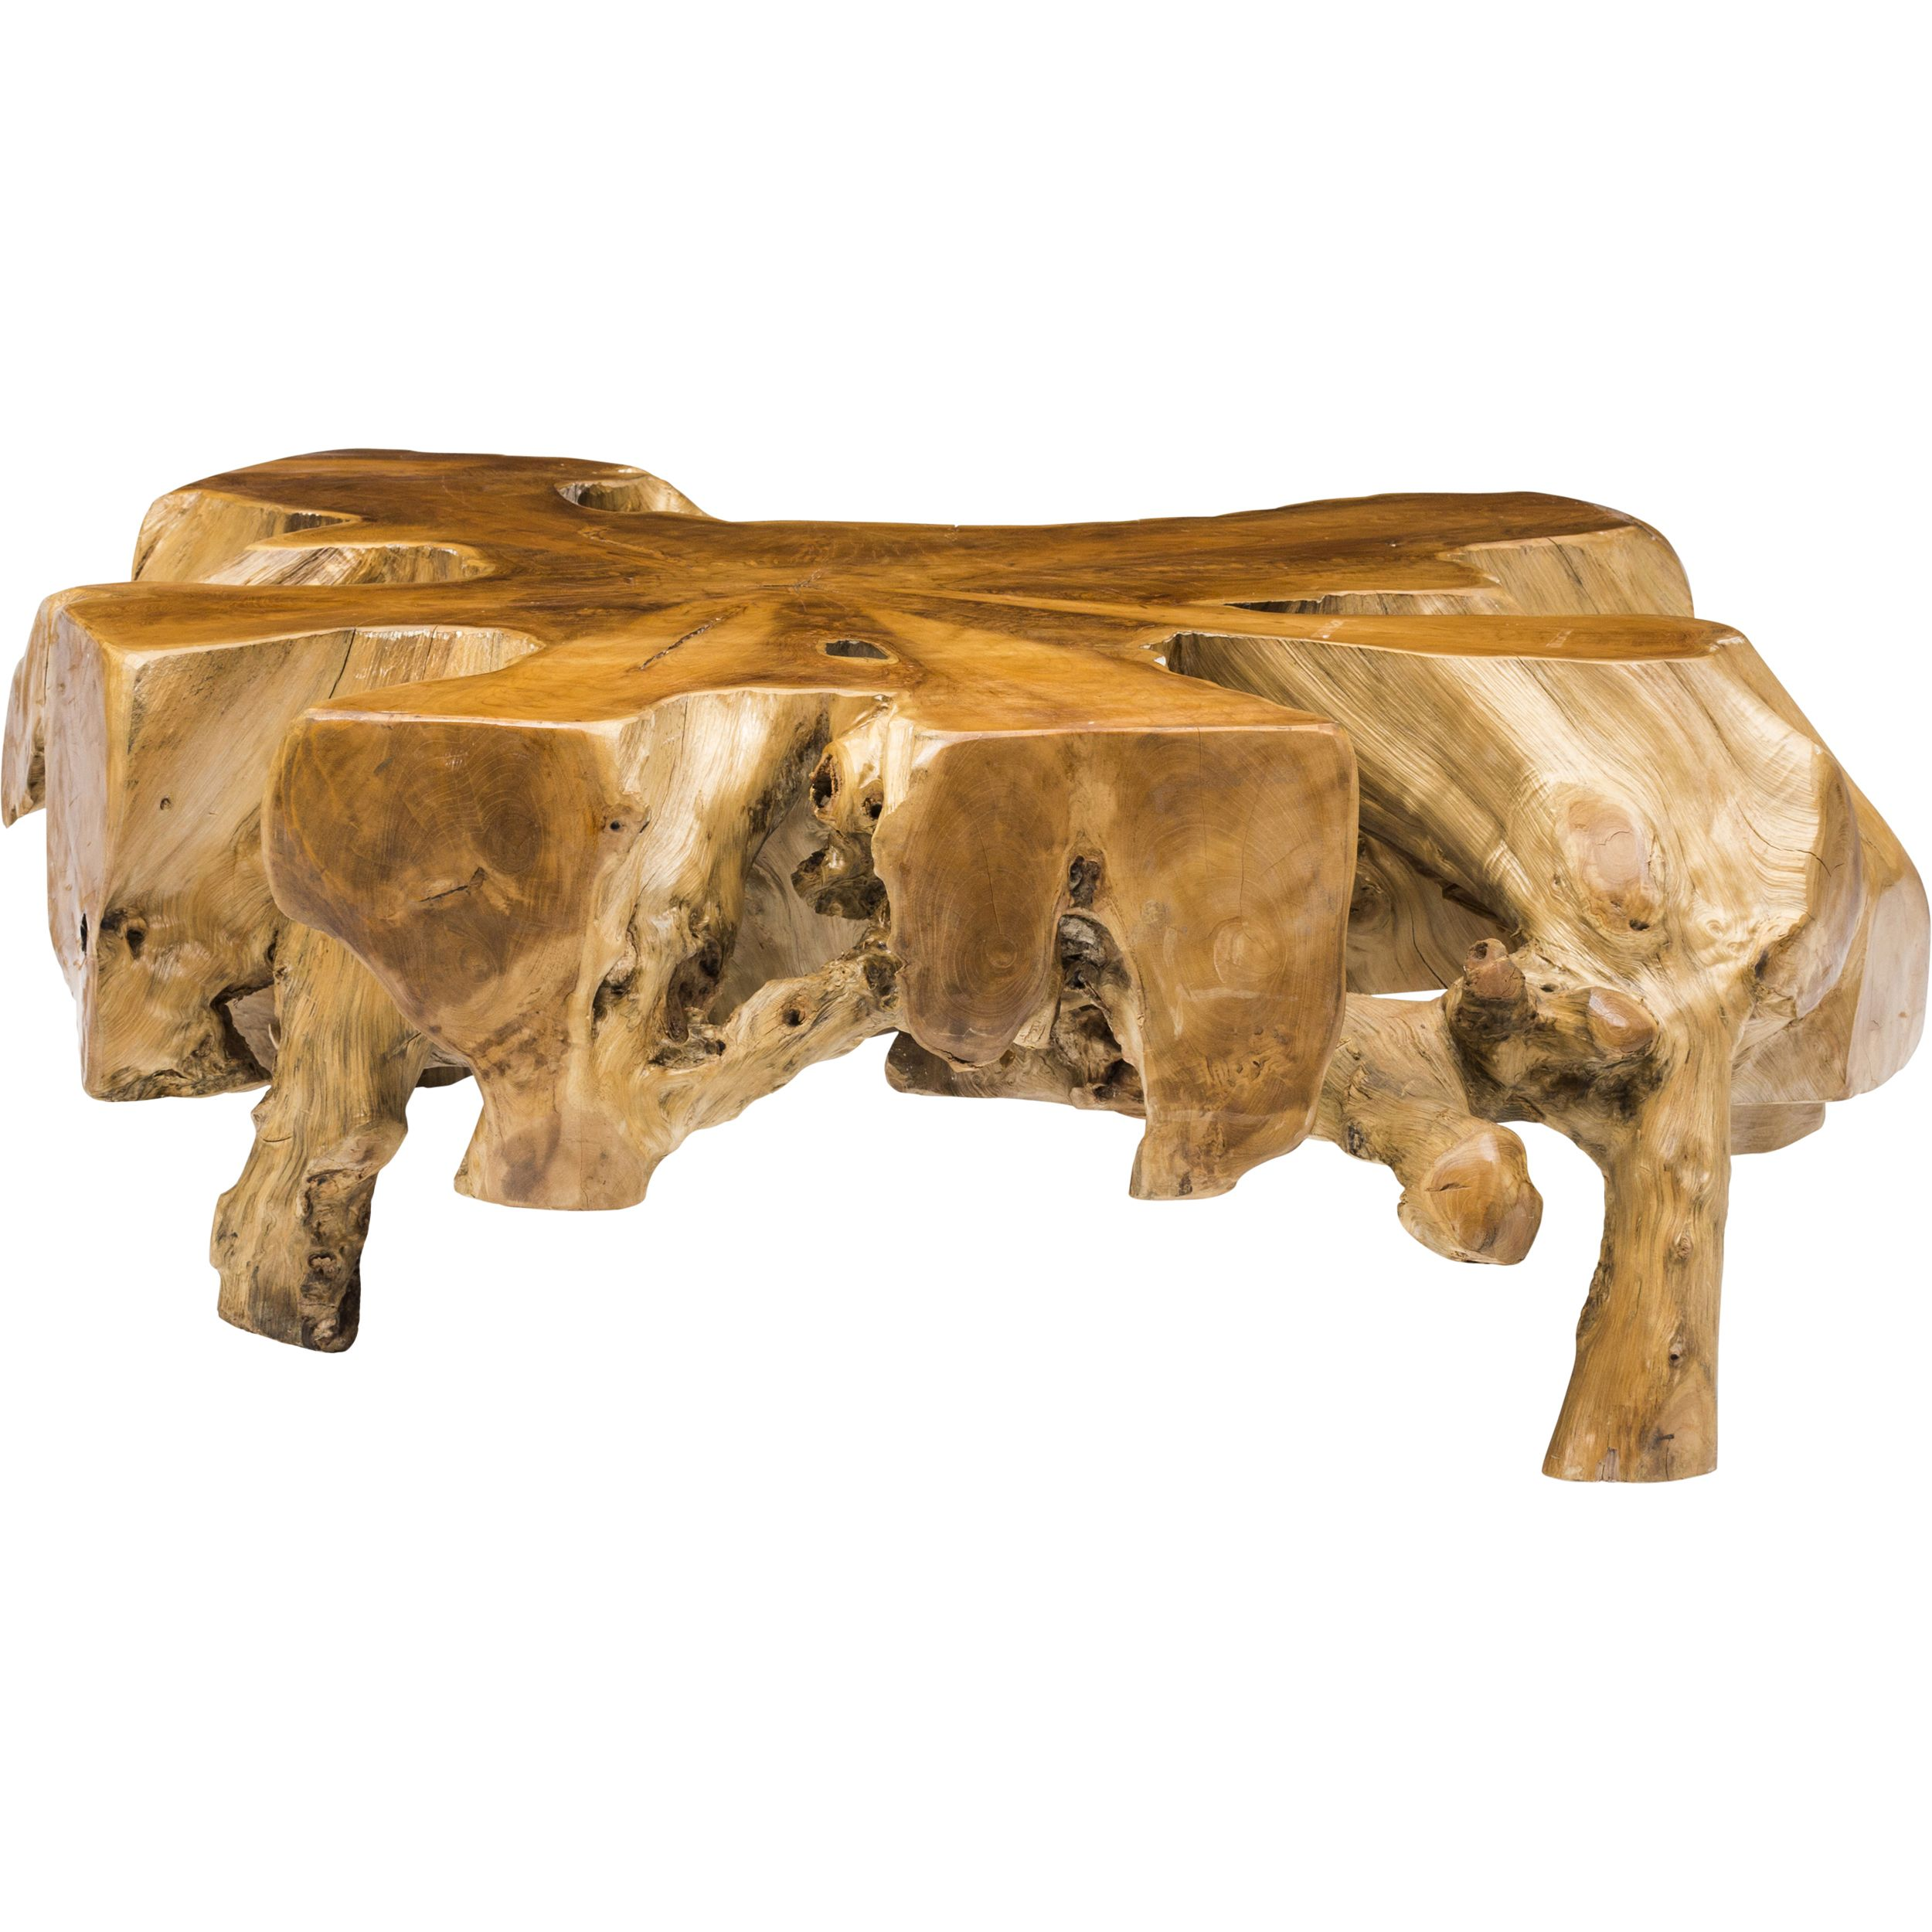 Teak Root Coffee Table - Large | Coffee table ...